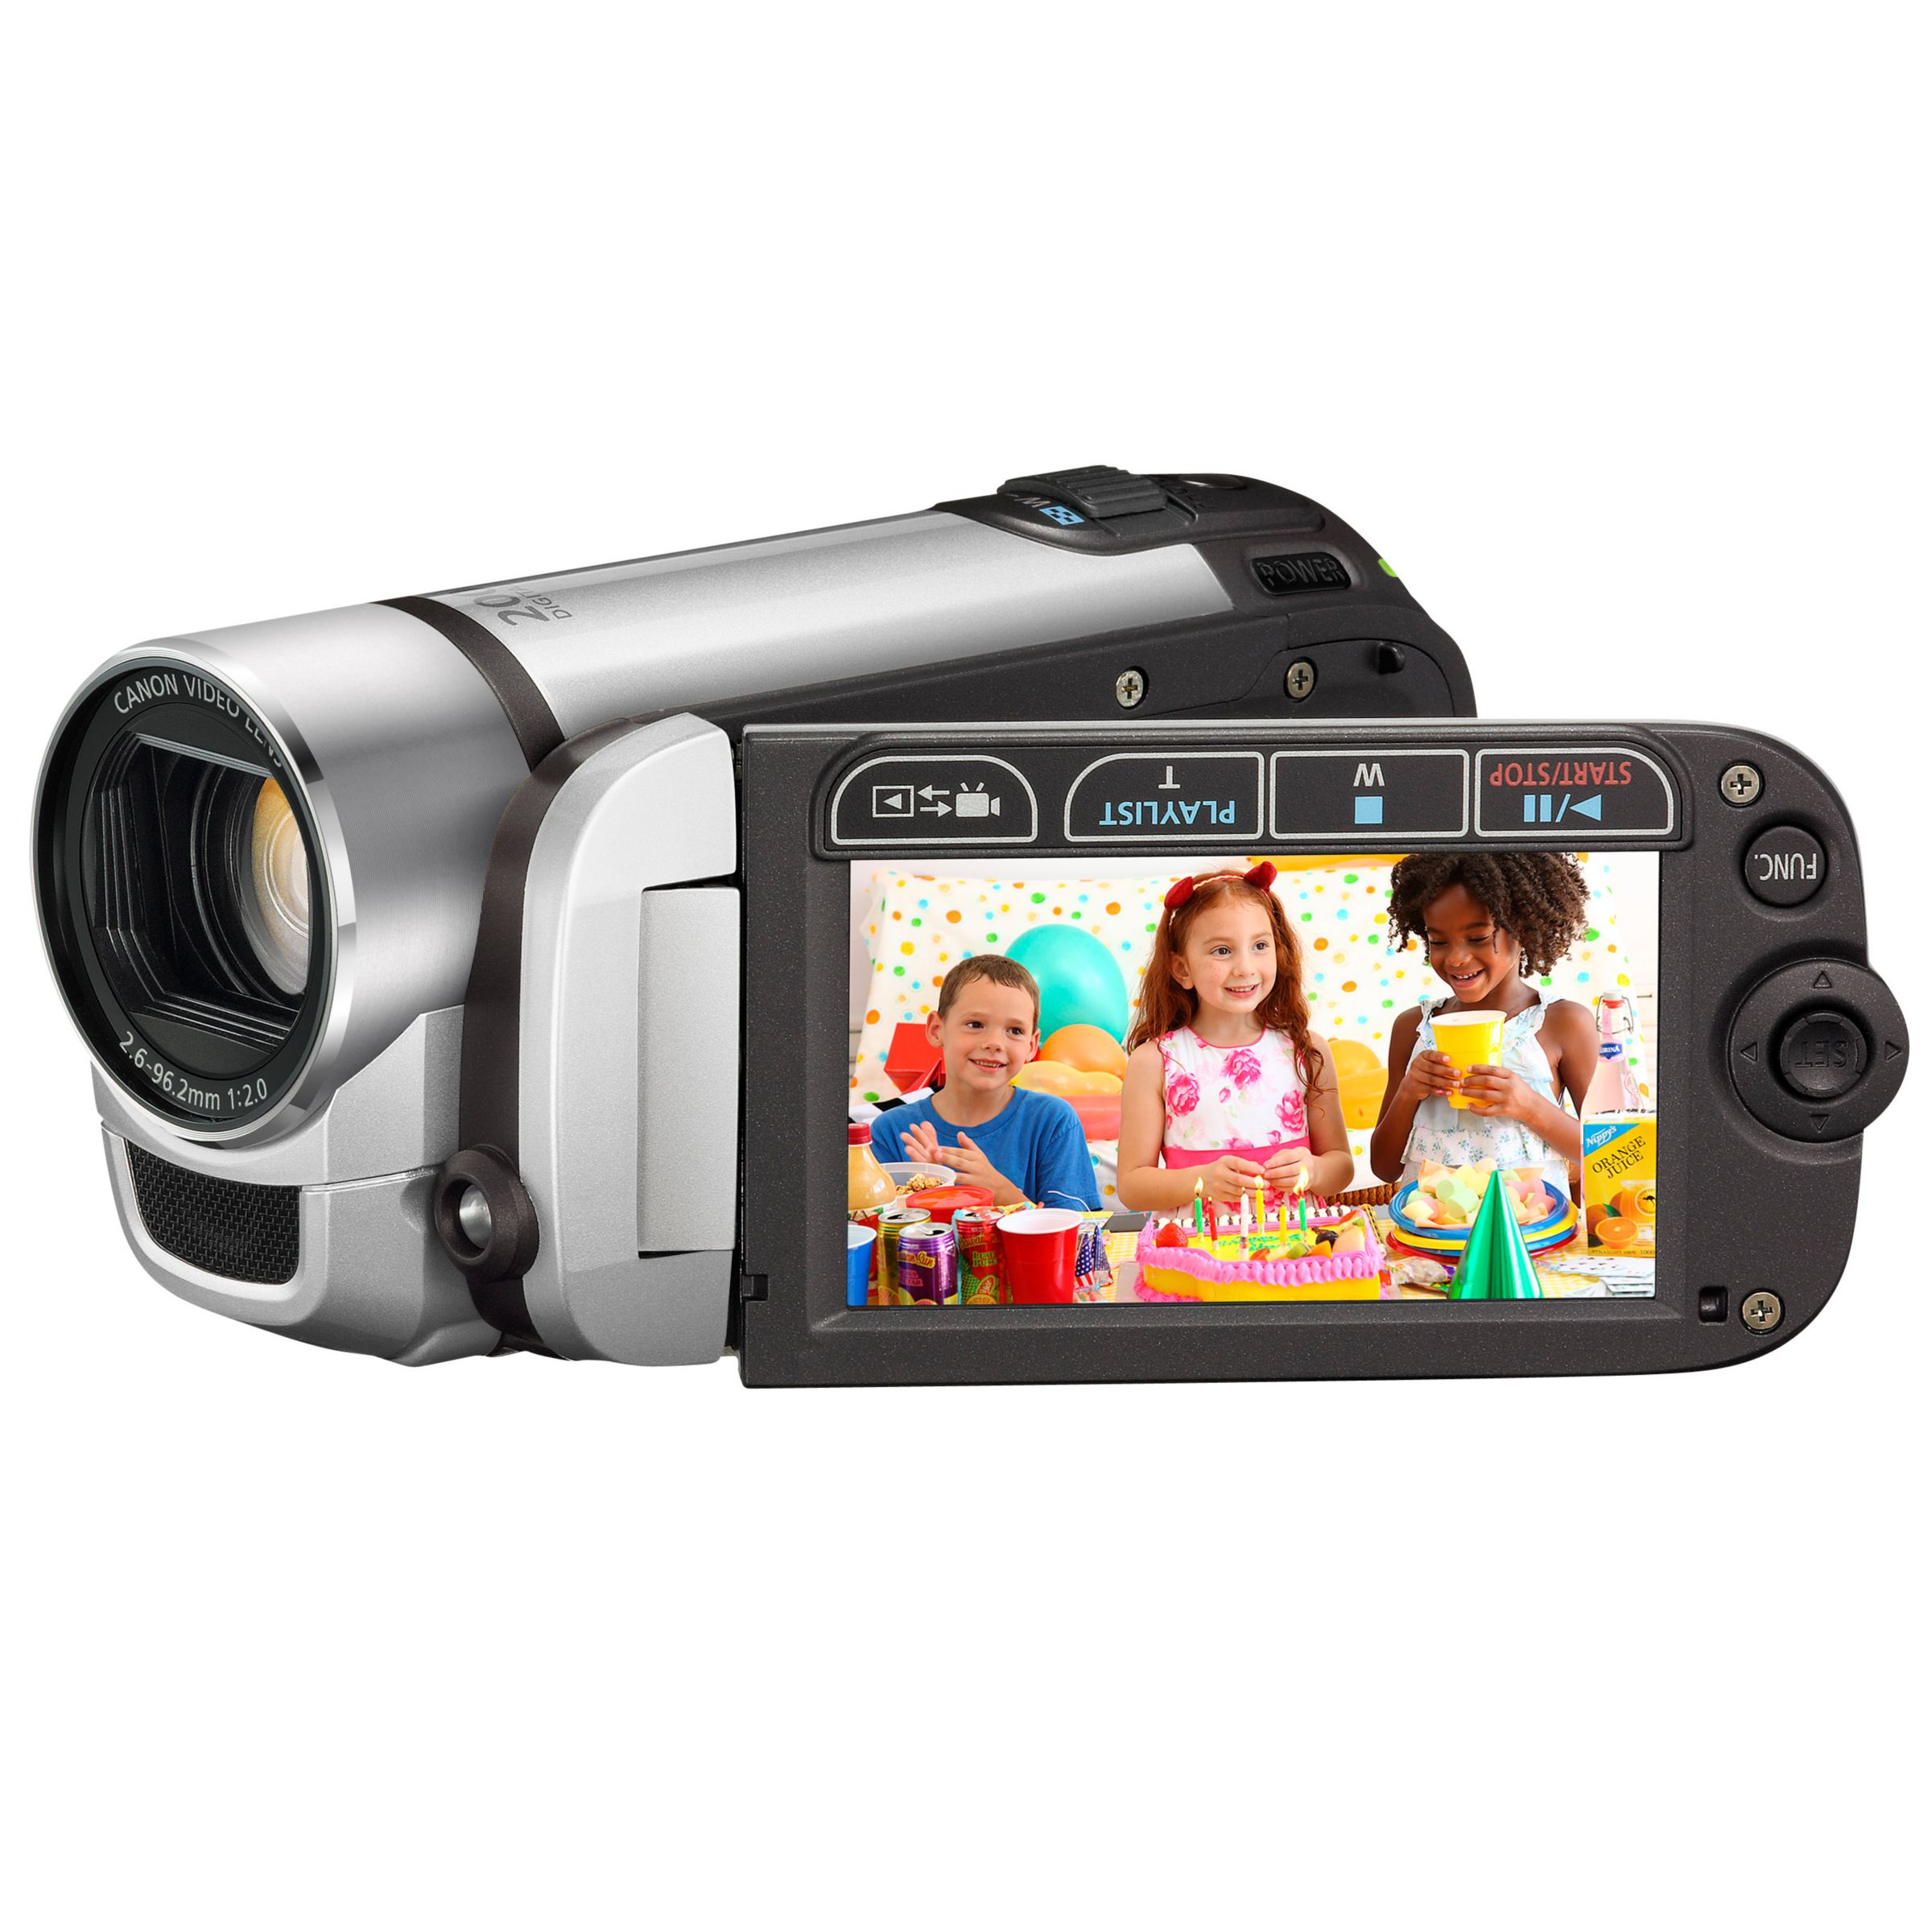 Canon FS306 SD Camcorder and Kit, Silver at John Lewis